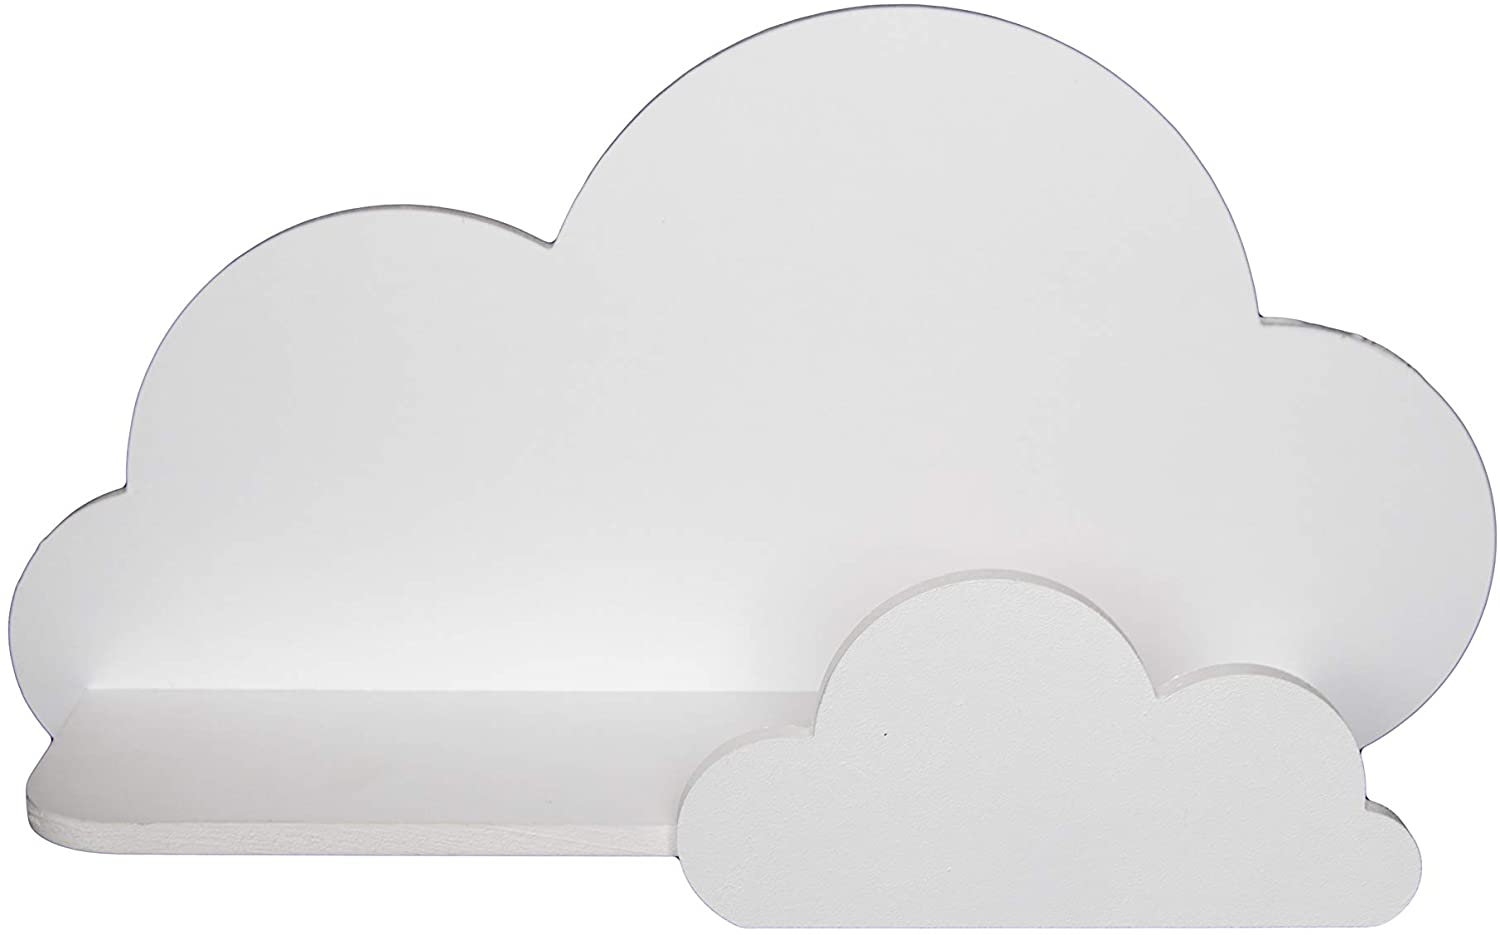 BugyBagy Trend Lab Cloud Wall Shelf (White)